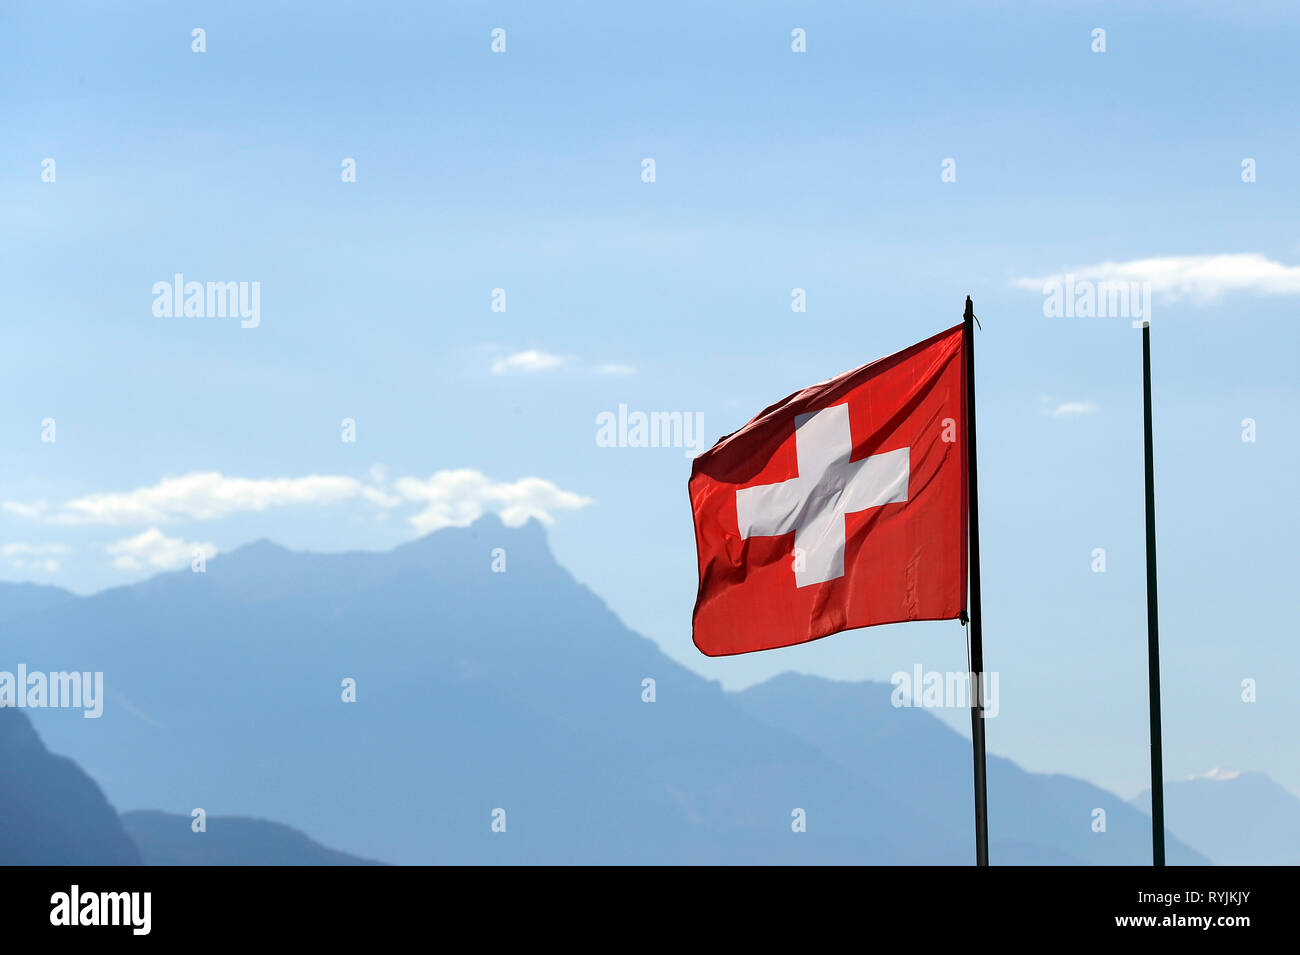 Drapeau suisse. Vevey. La Suisse. Photo Stock